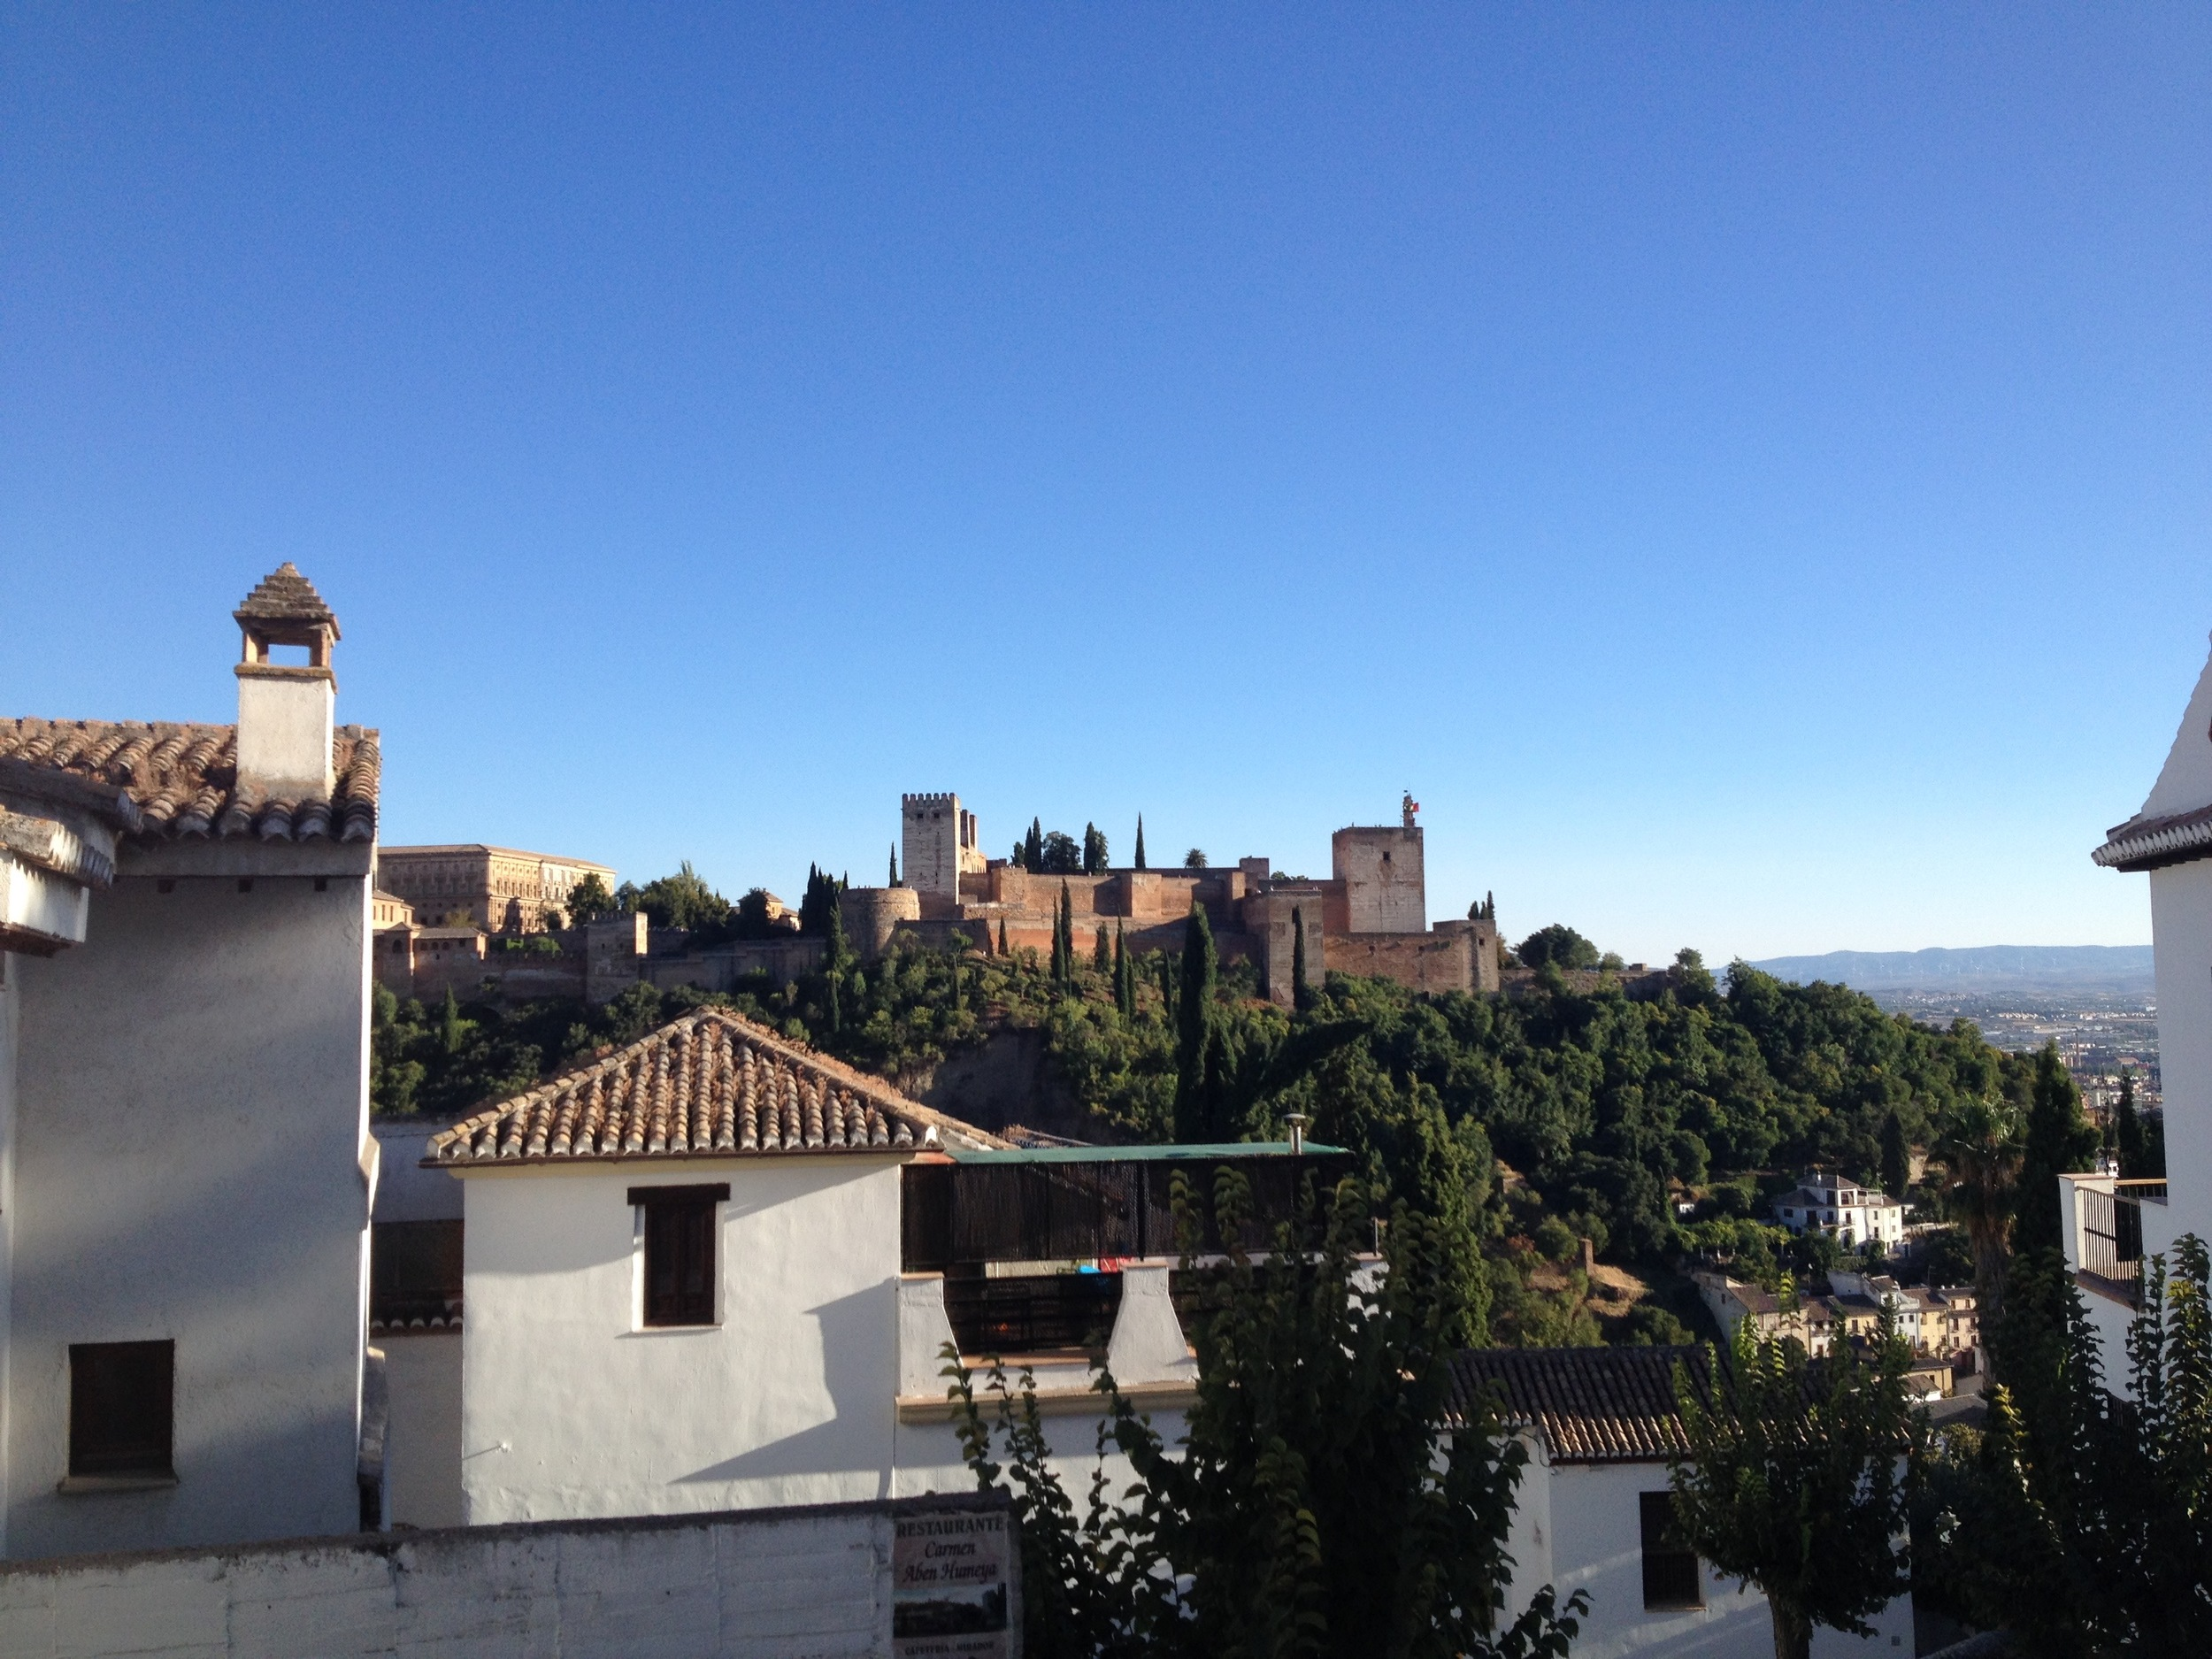 View of the Alhambra on a cloudless day from the Albaicín.